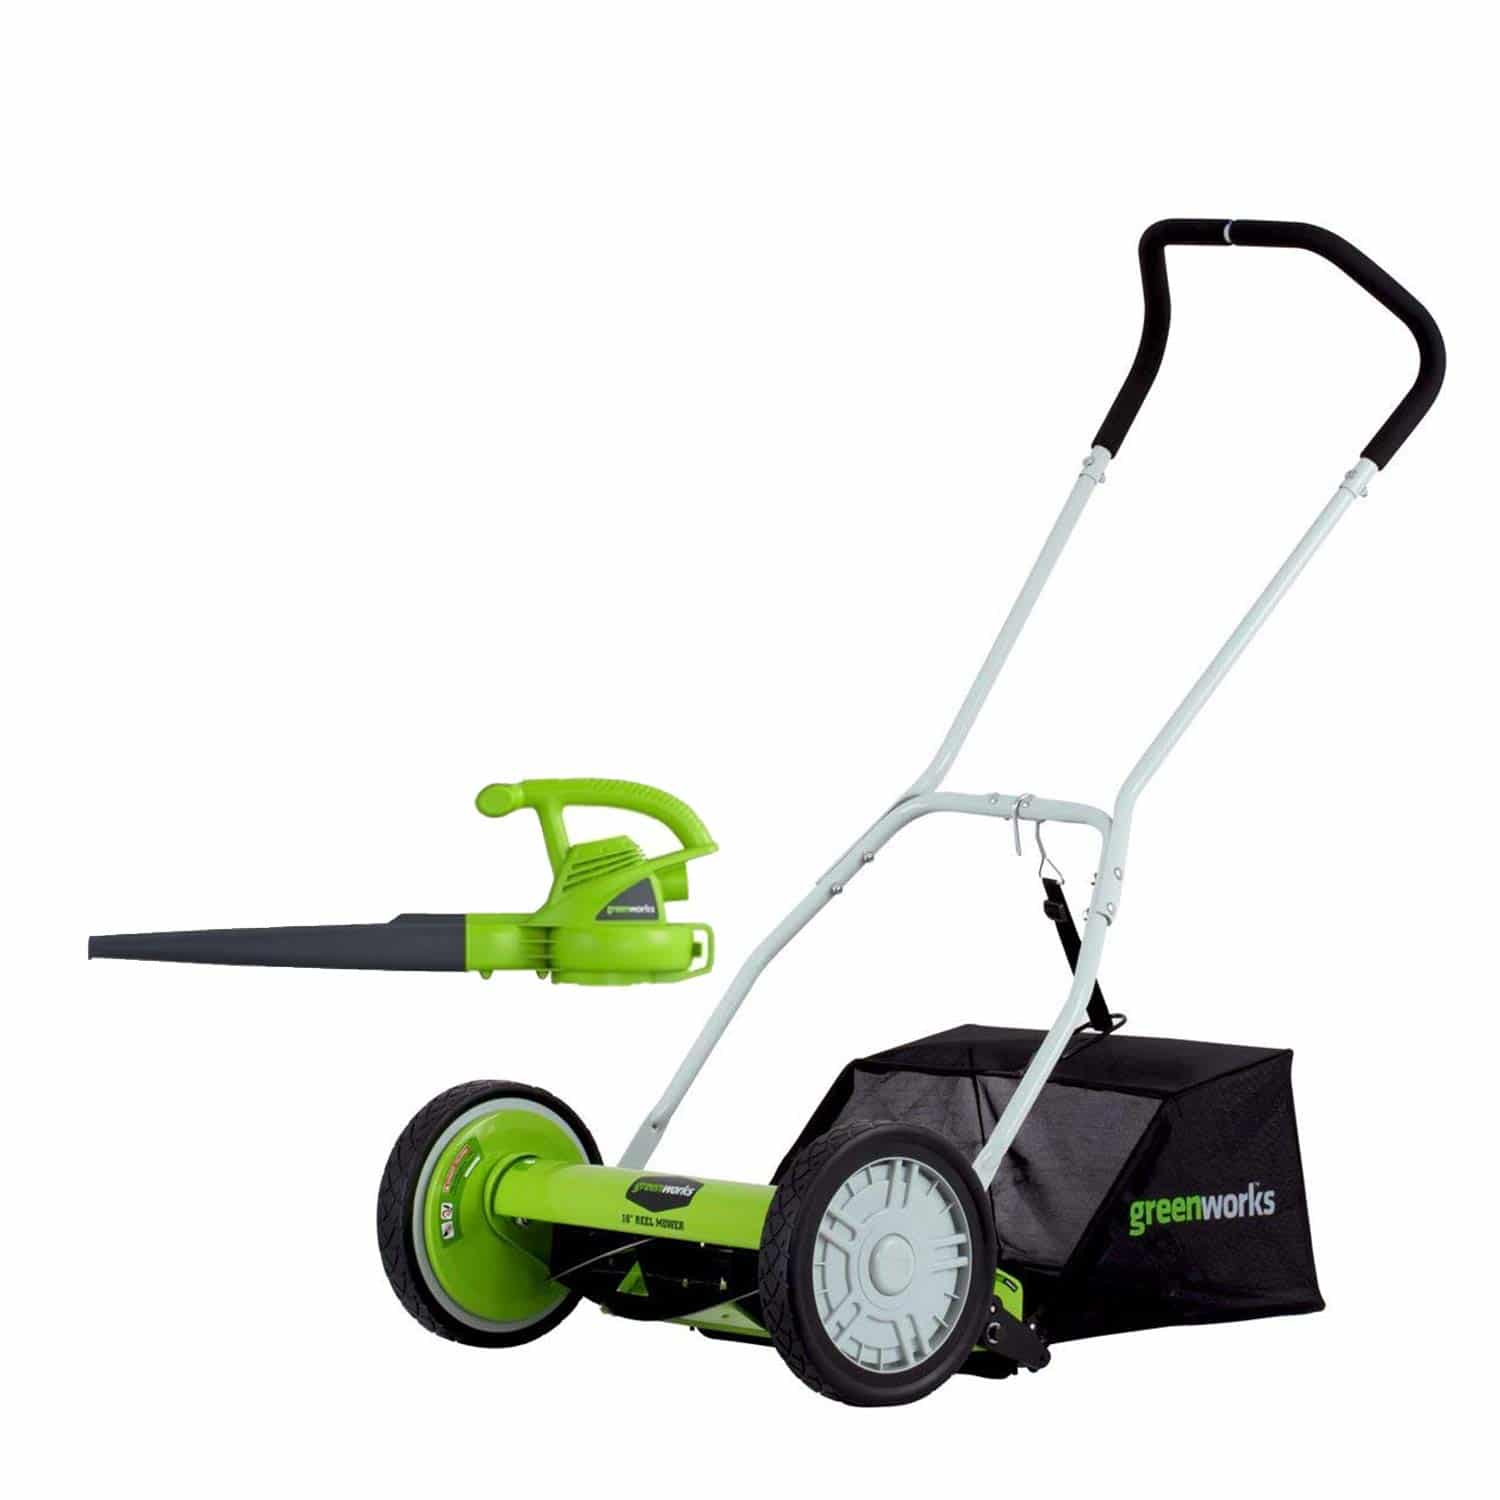 Green Works 16-Inch Reel Lawn Mower